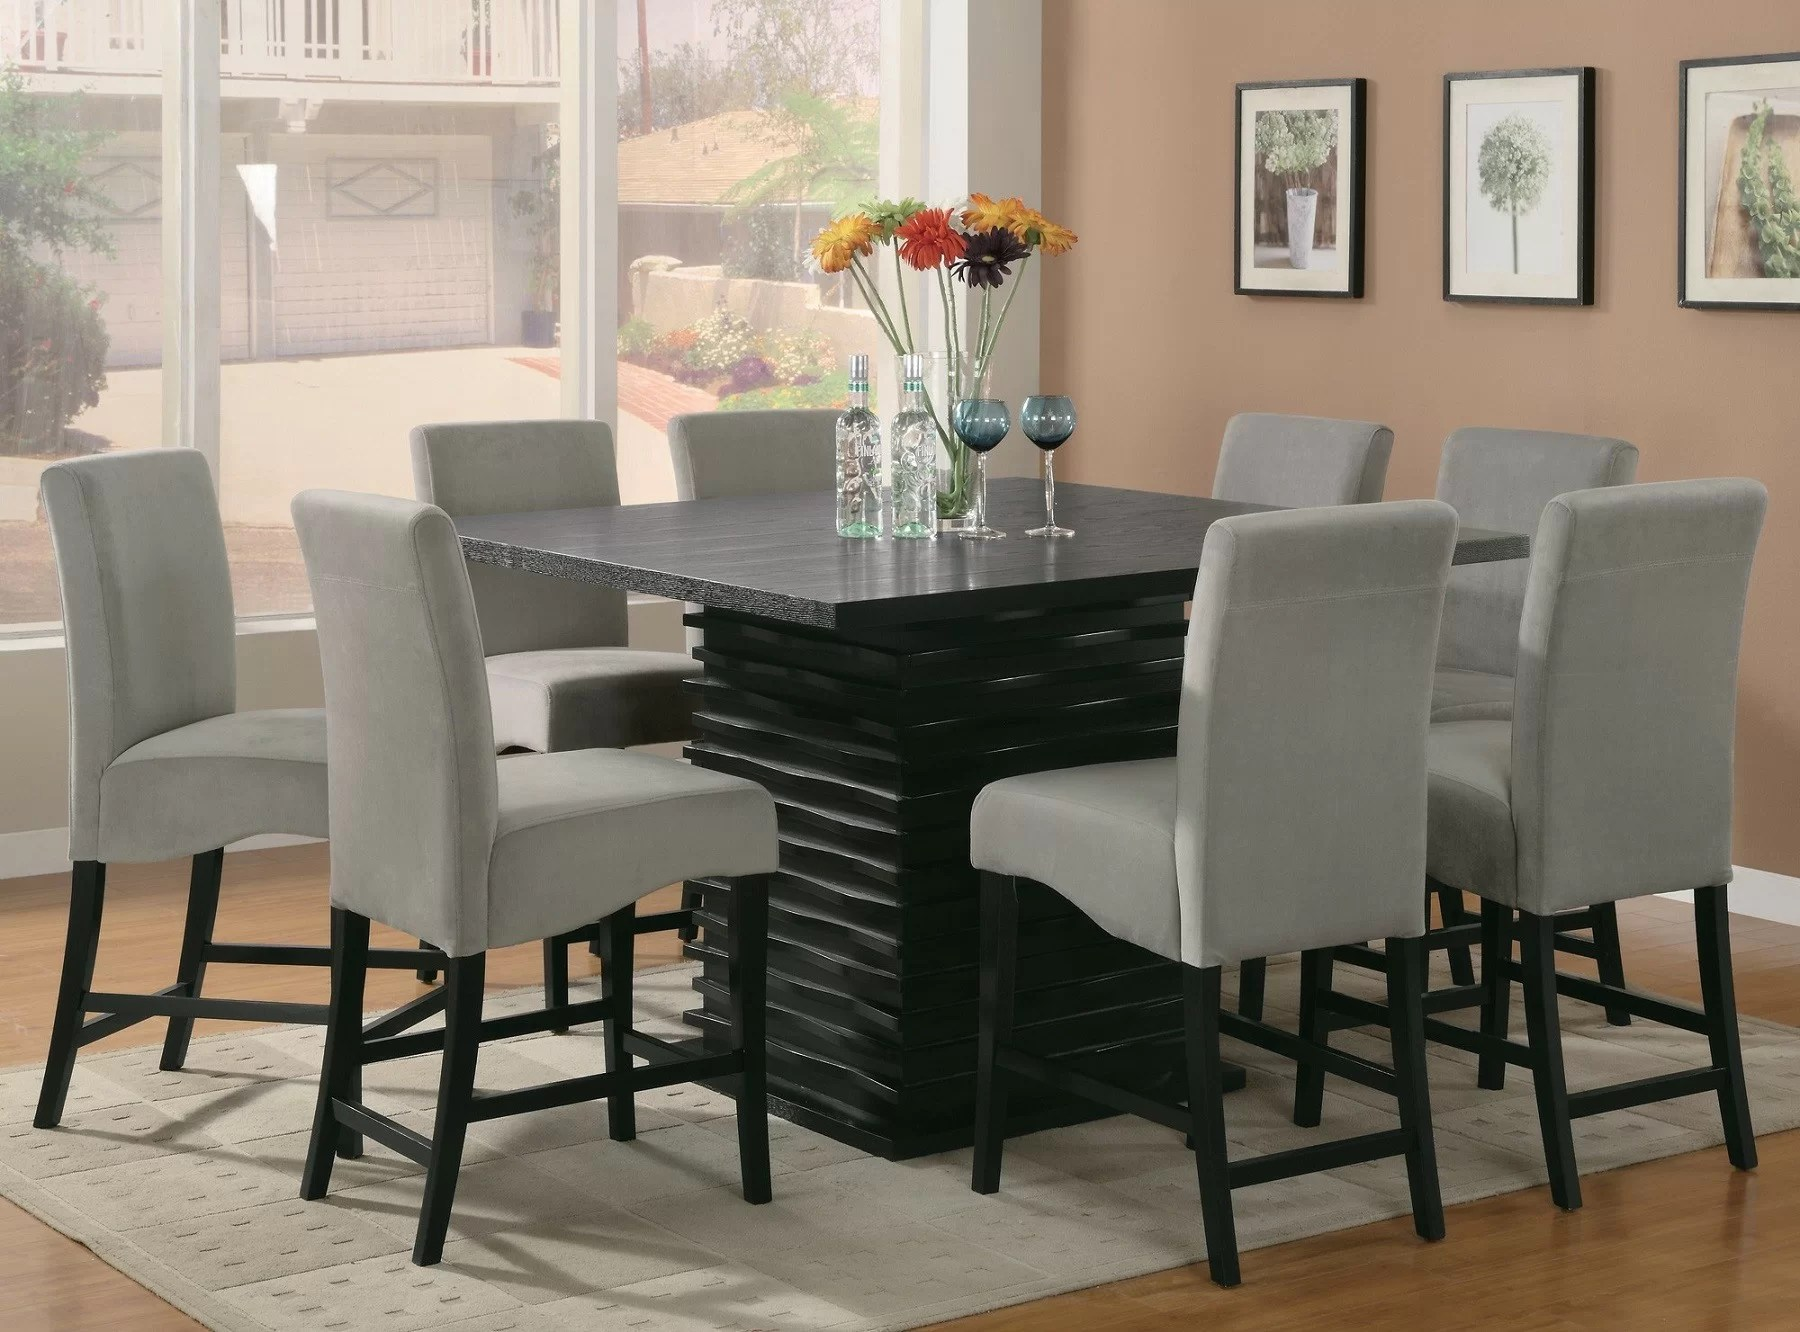 Black Dining Room Table And Chairs Annapolis 9 Piece Counter Height Dining Set